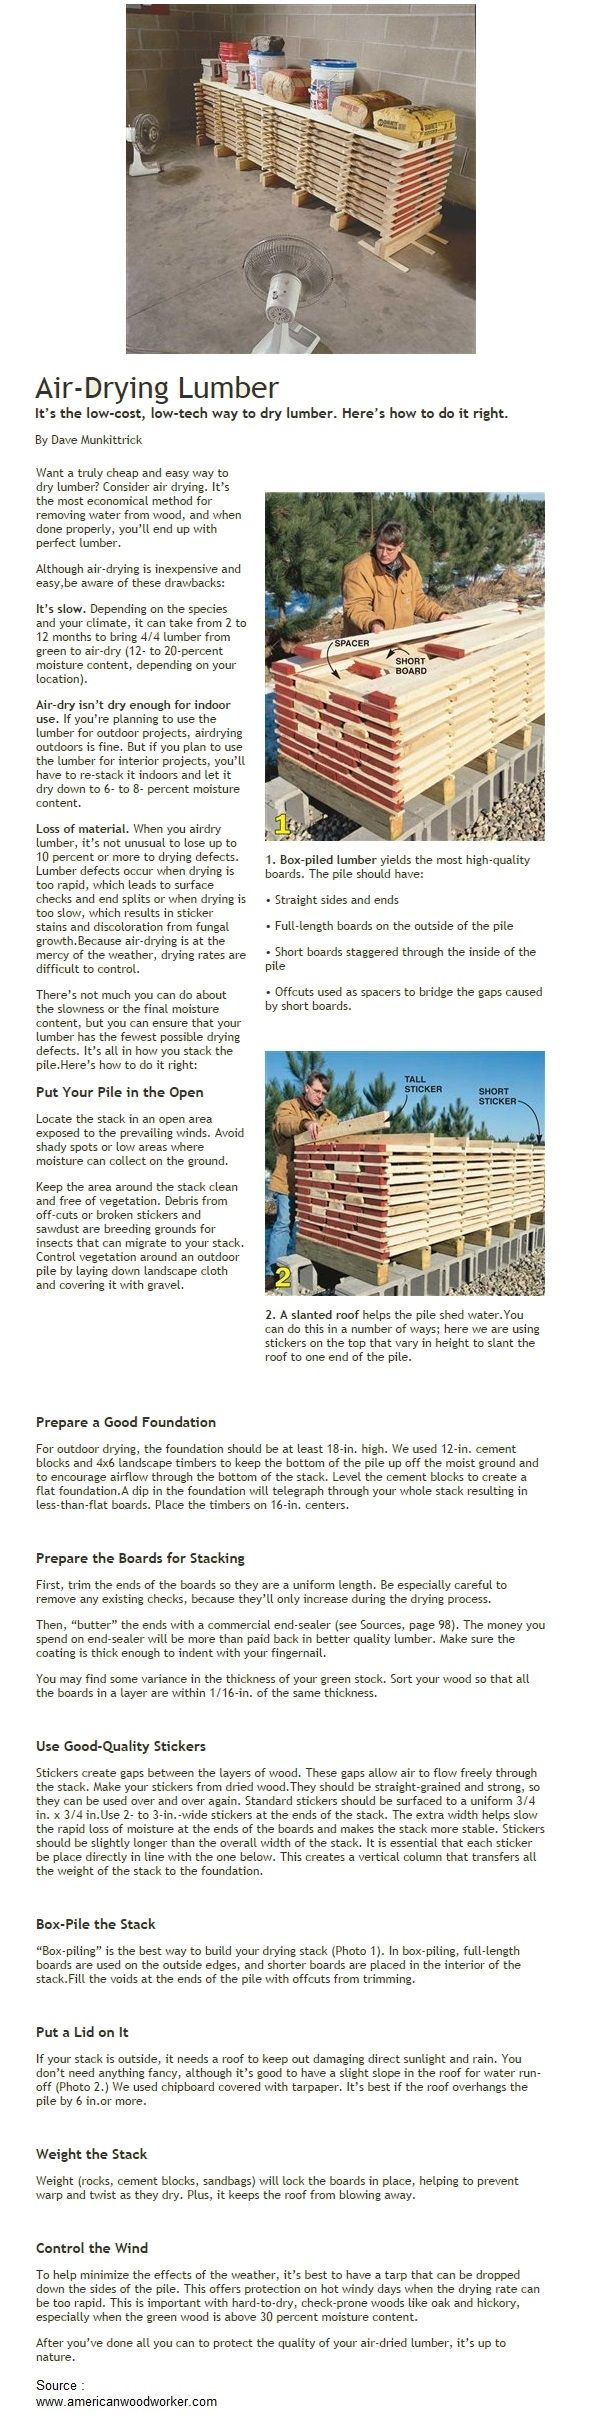 Air-Drying Lumber | WoodworkerZ.com